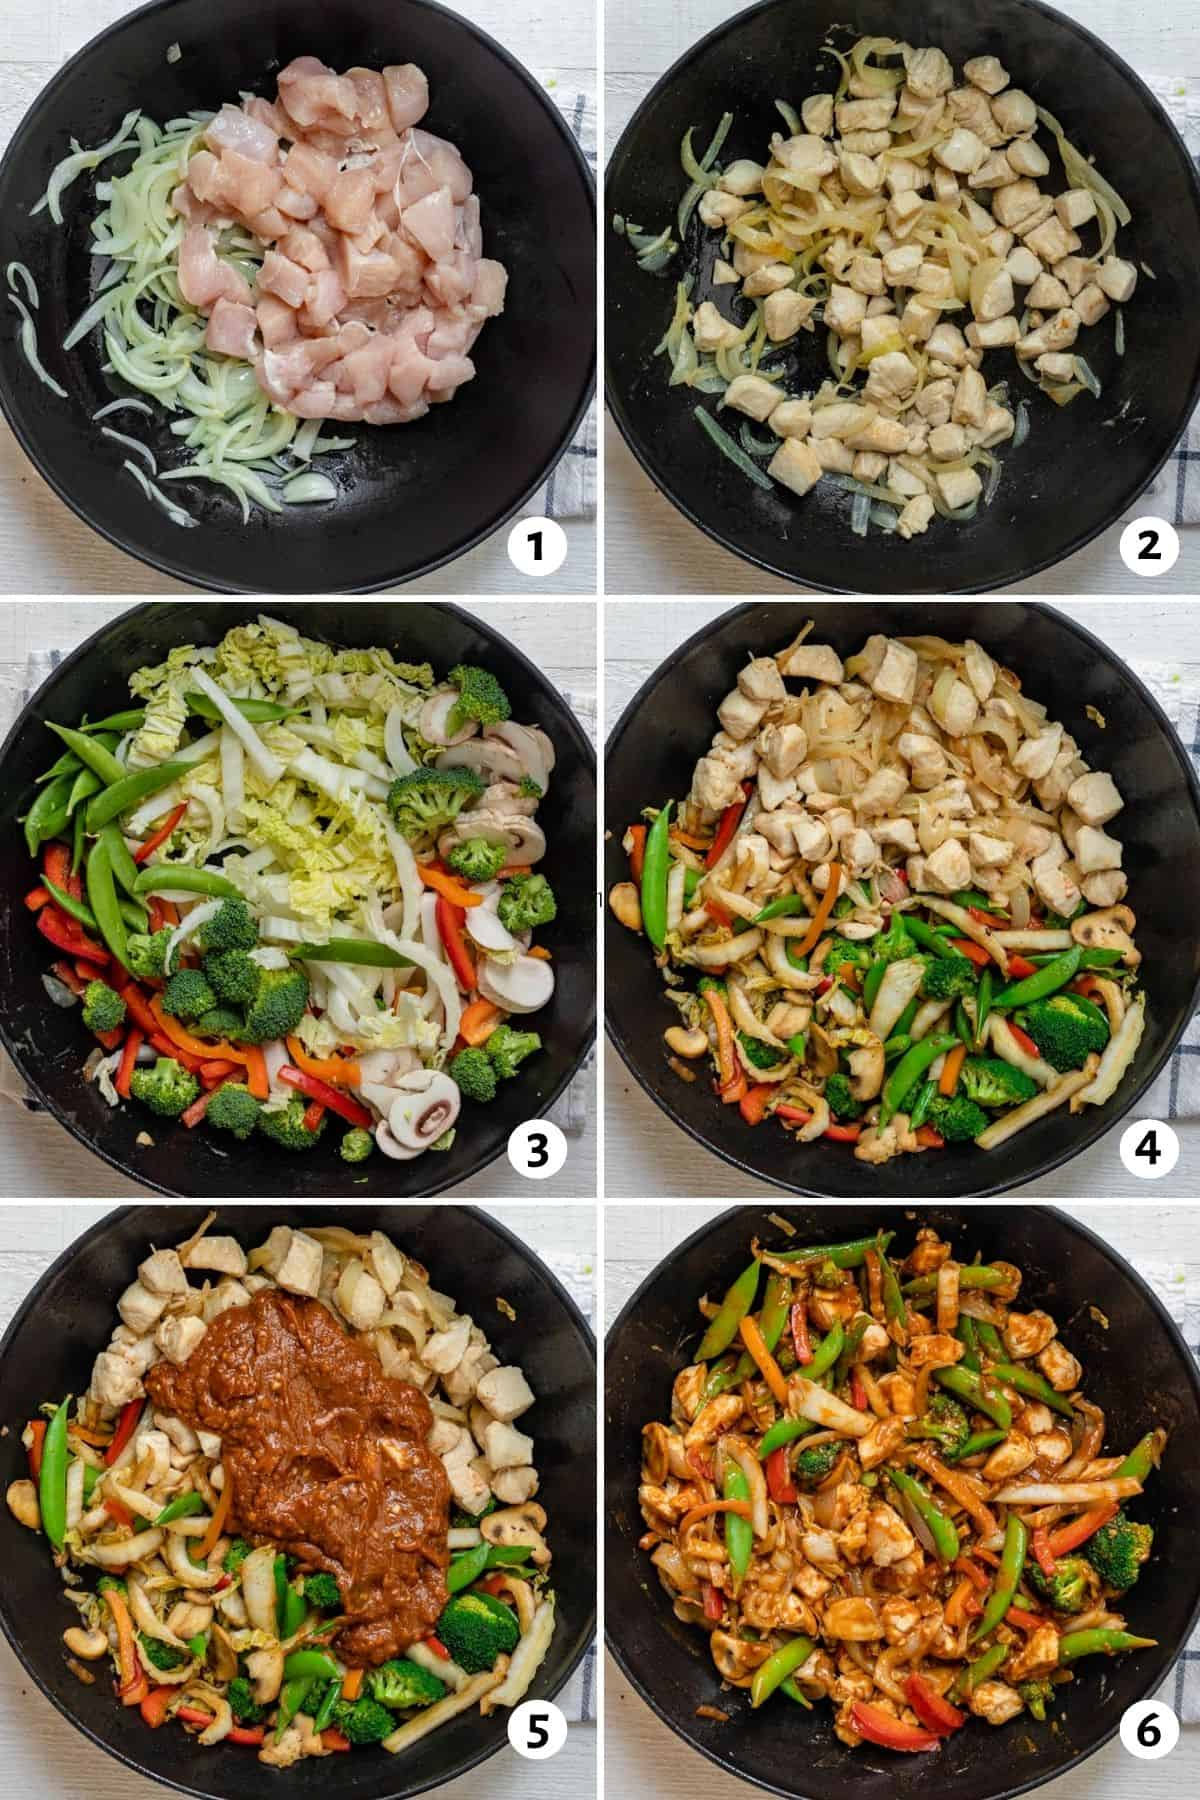 Collage of 6 images showing how to make the recipe in a wok